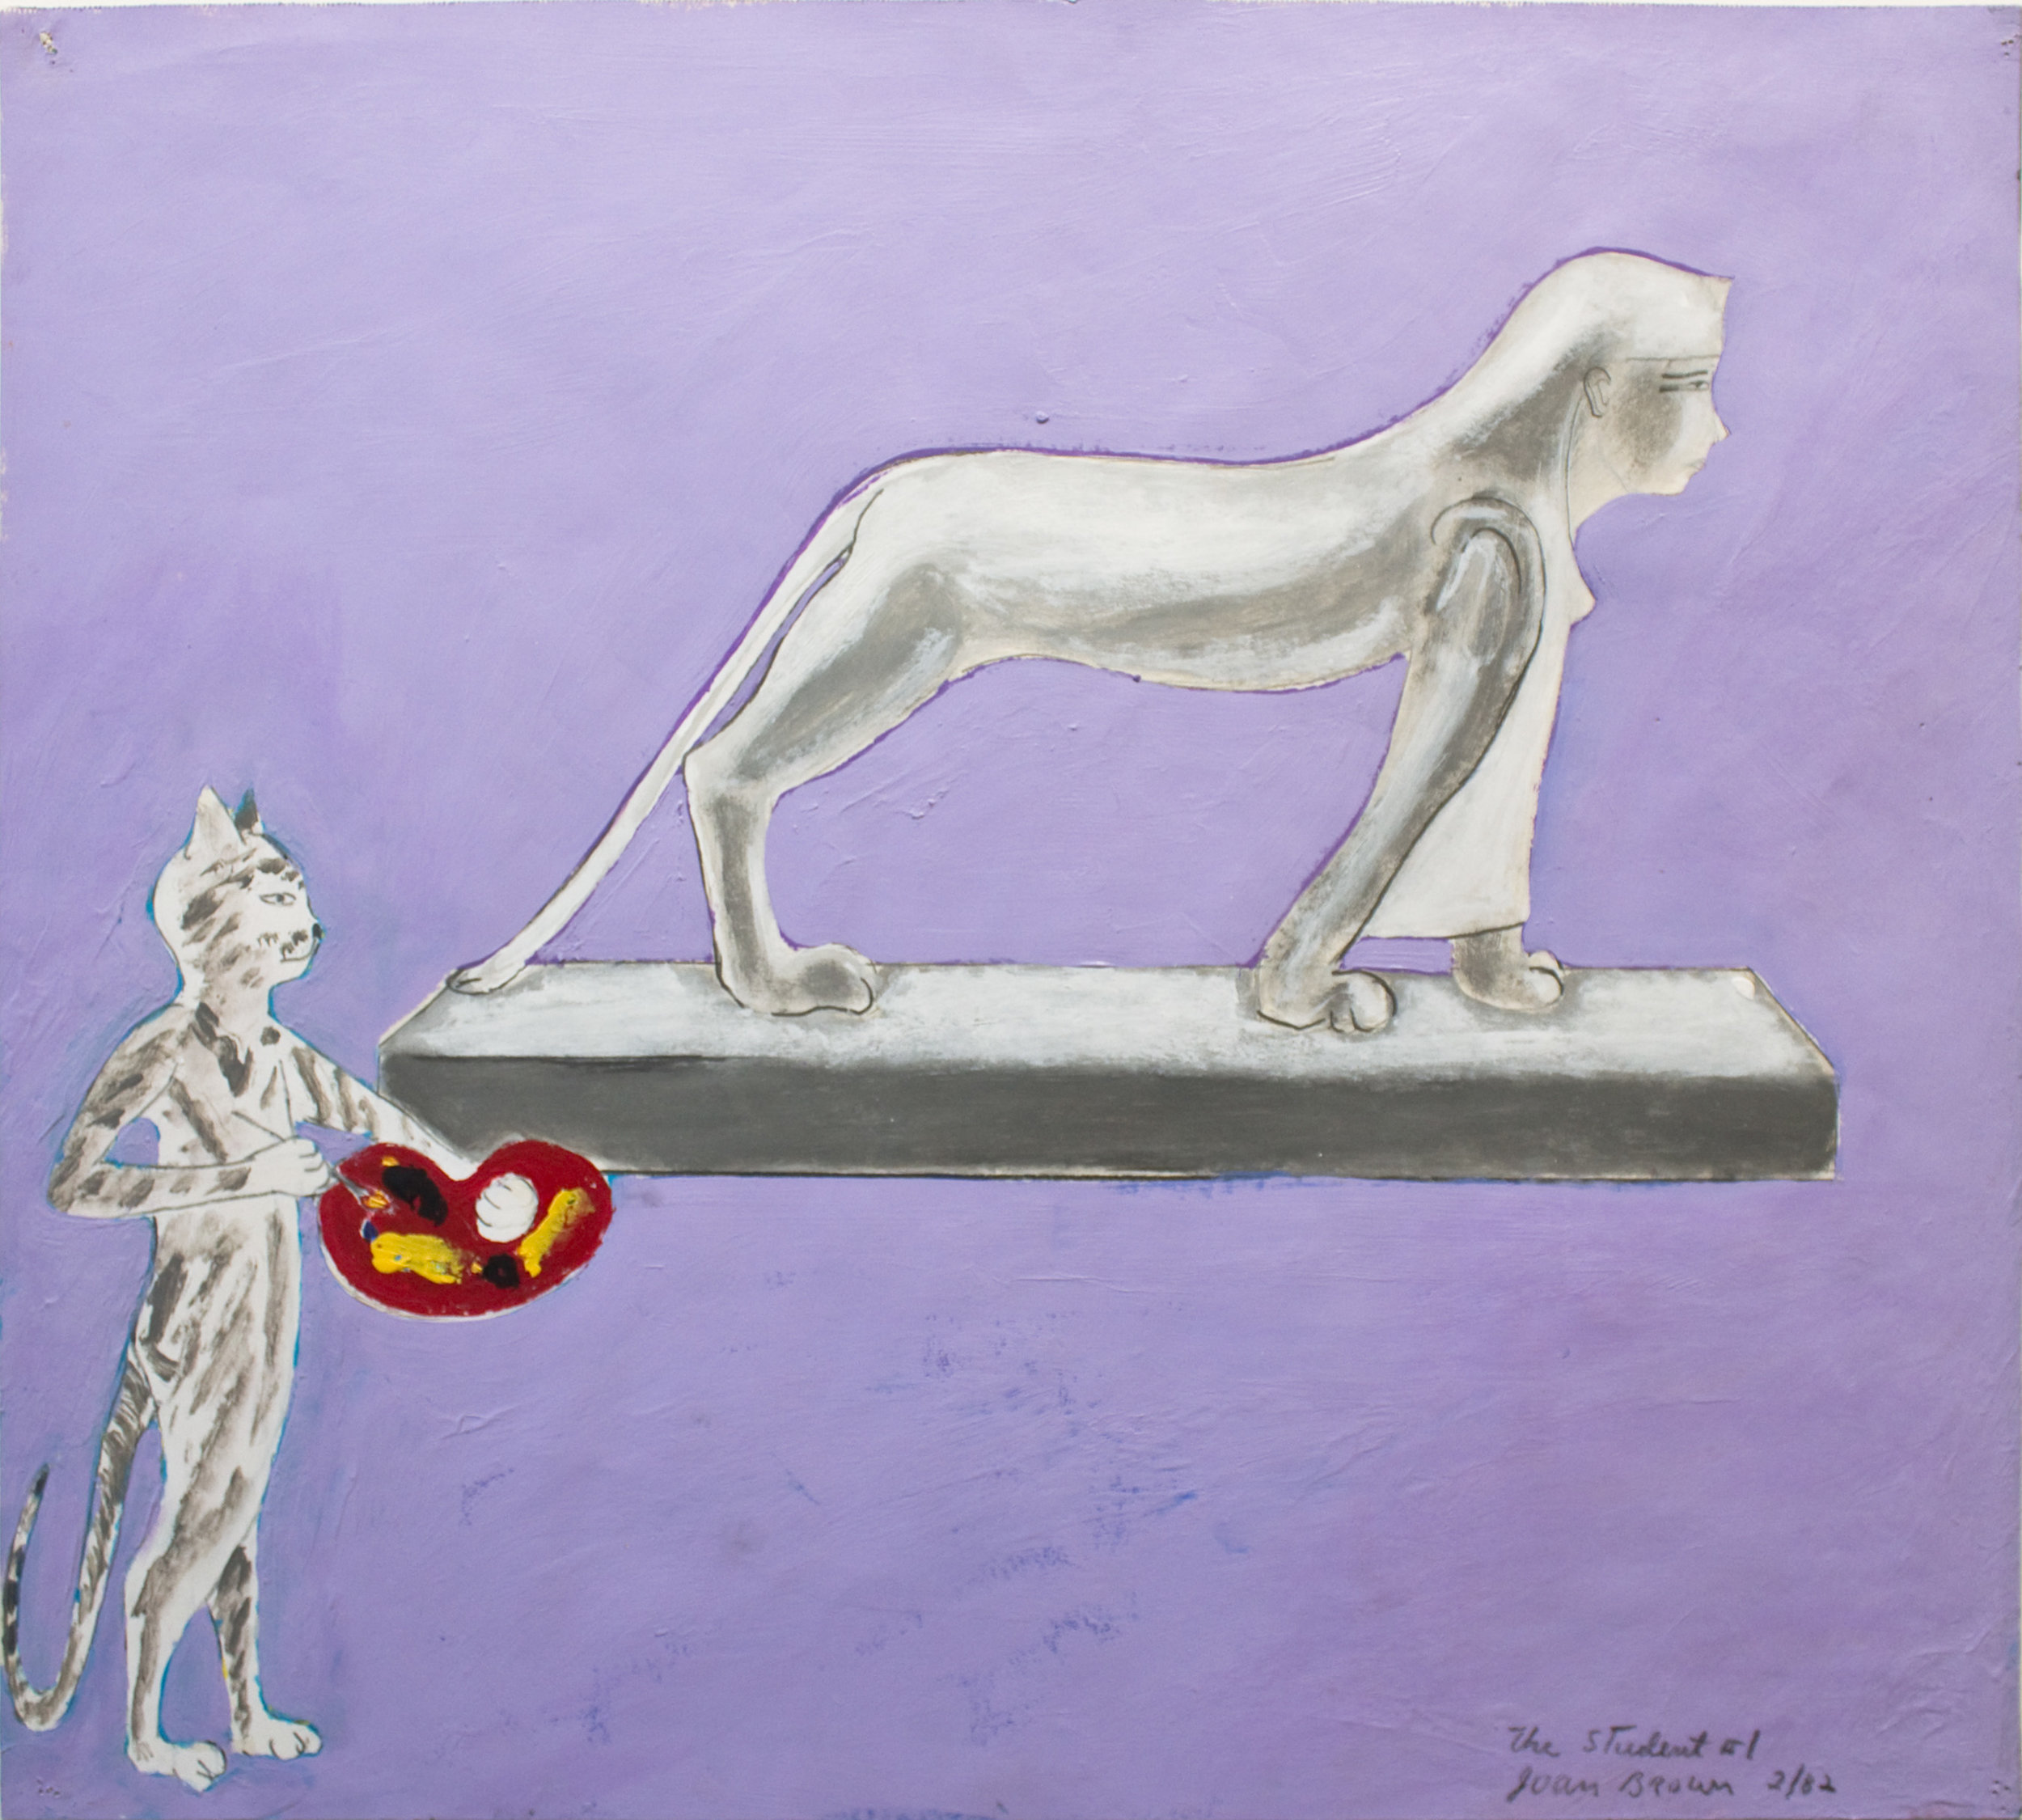 Joan Brown, The Student #1, 1982, Acrylic on paper, Suite of 8 drawings, 18 x 20 inches. © The Joan Brown Estate.